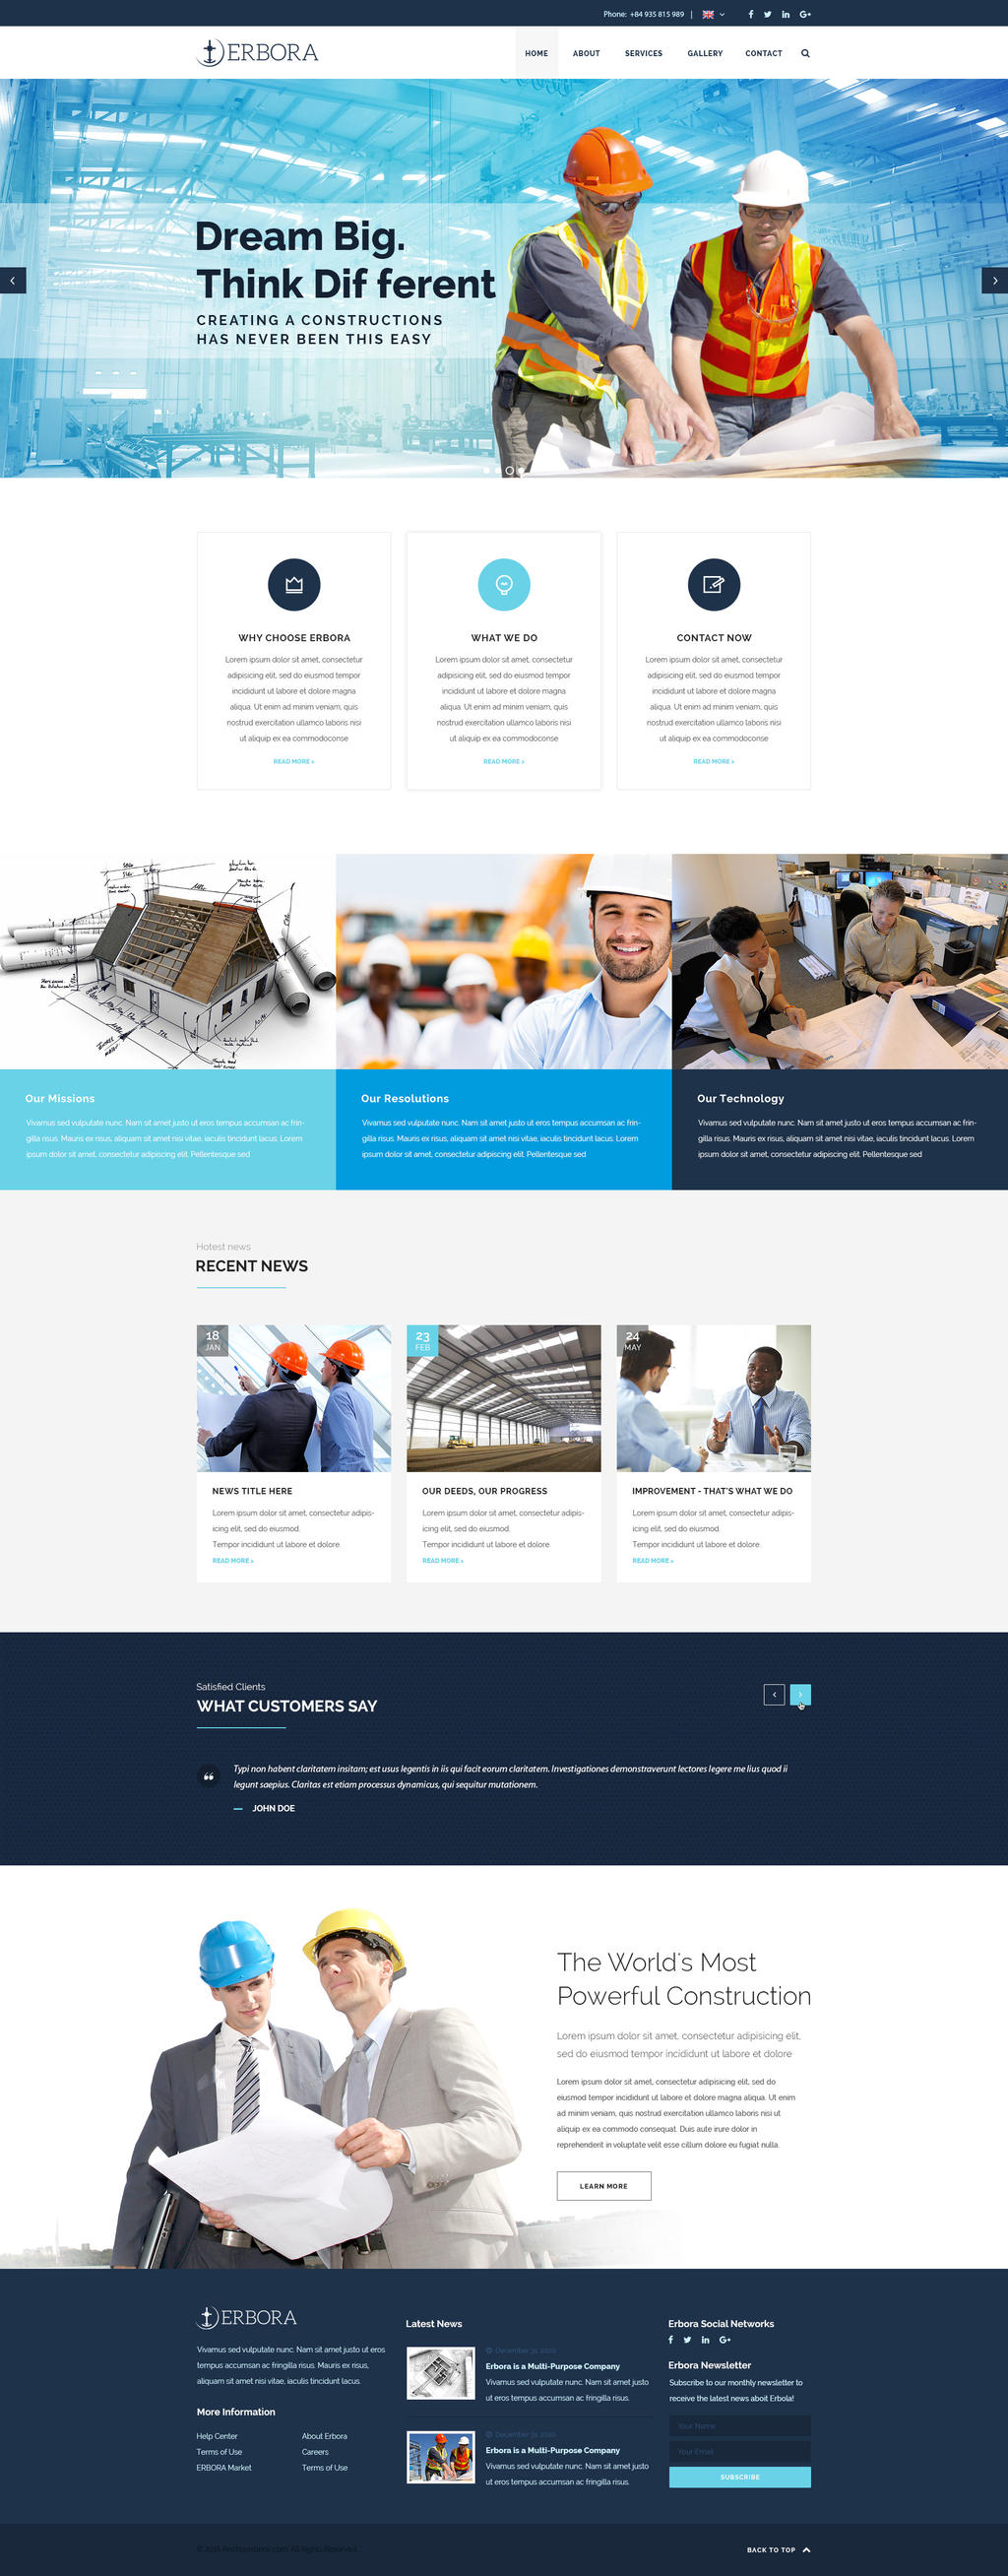 Anchorerbora webdesign HOMEPAGE by zokac1